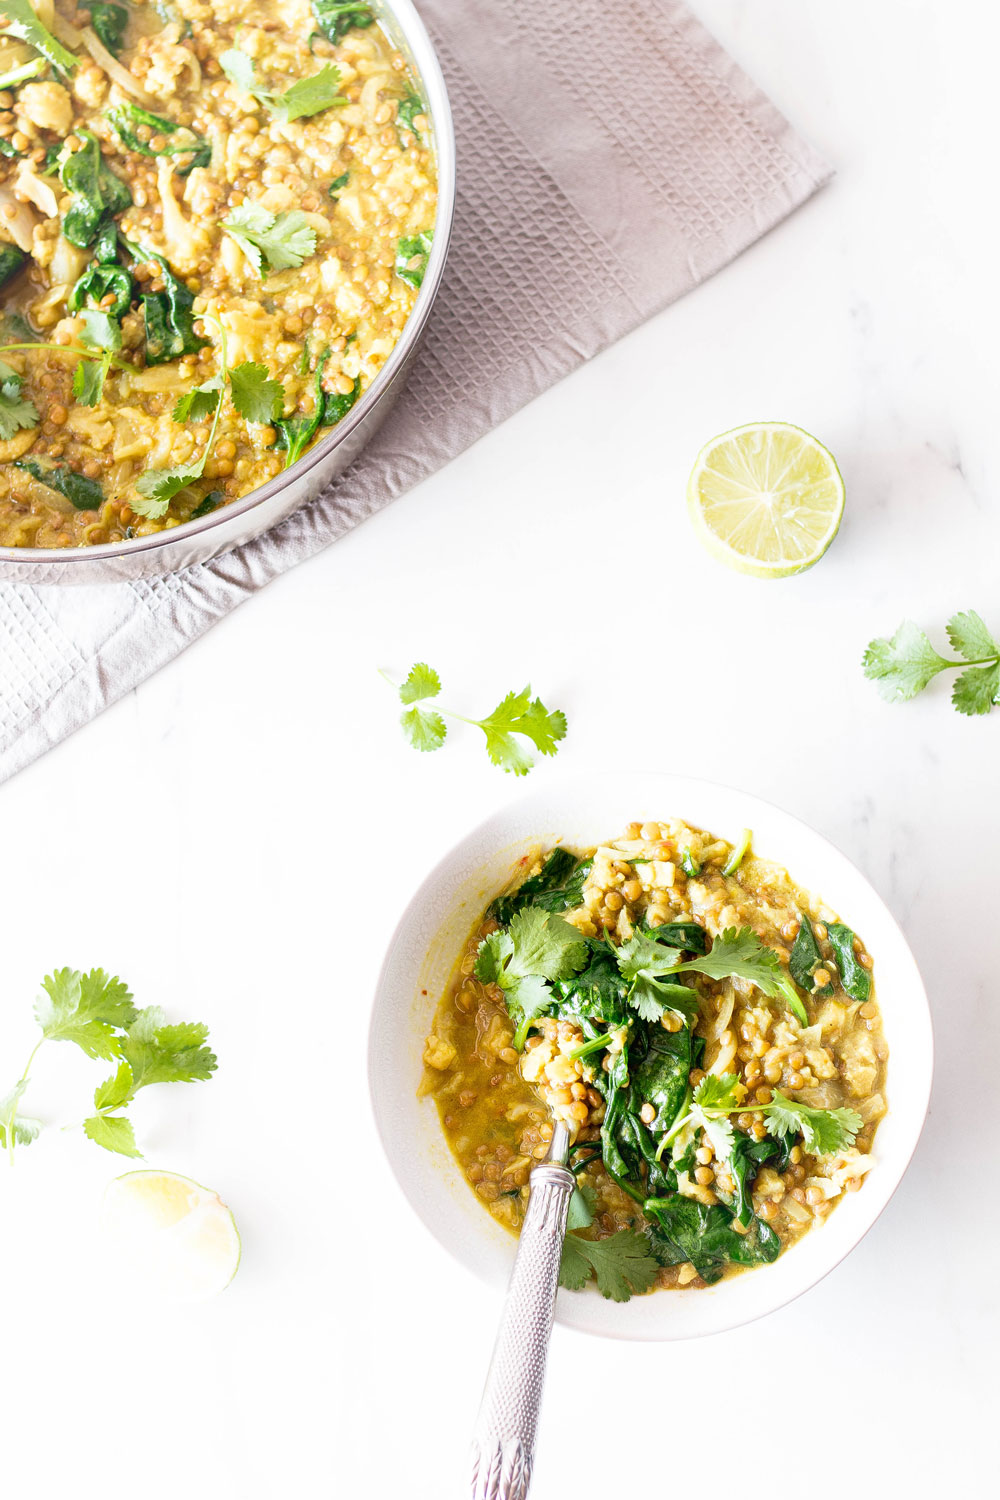 Delicious, vegan, cheap and healthy – this cauliflower and lentil dal with easy curry paste is a comfort food classic that will warm you up on a winter's night. Each serving provides 524 kcal, 20 g protein, 55 g carbohydrates, and 30 g fat and is full of amazing nutrients, phytonutrients and flavor. https://www.spotebi.com/recipes/cauliflower-lentil-dal-easy-curry-paste/